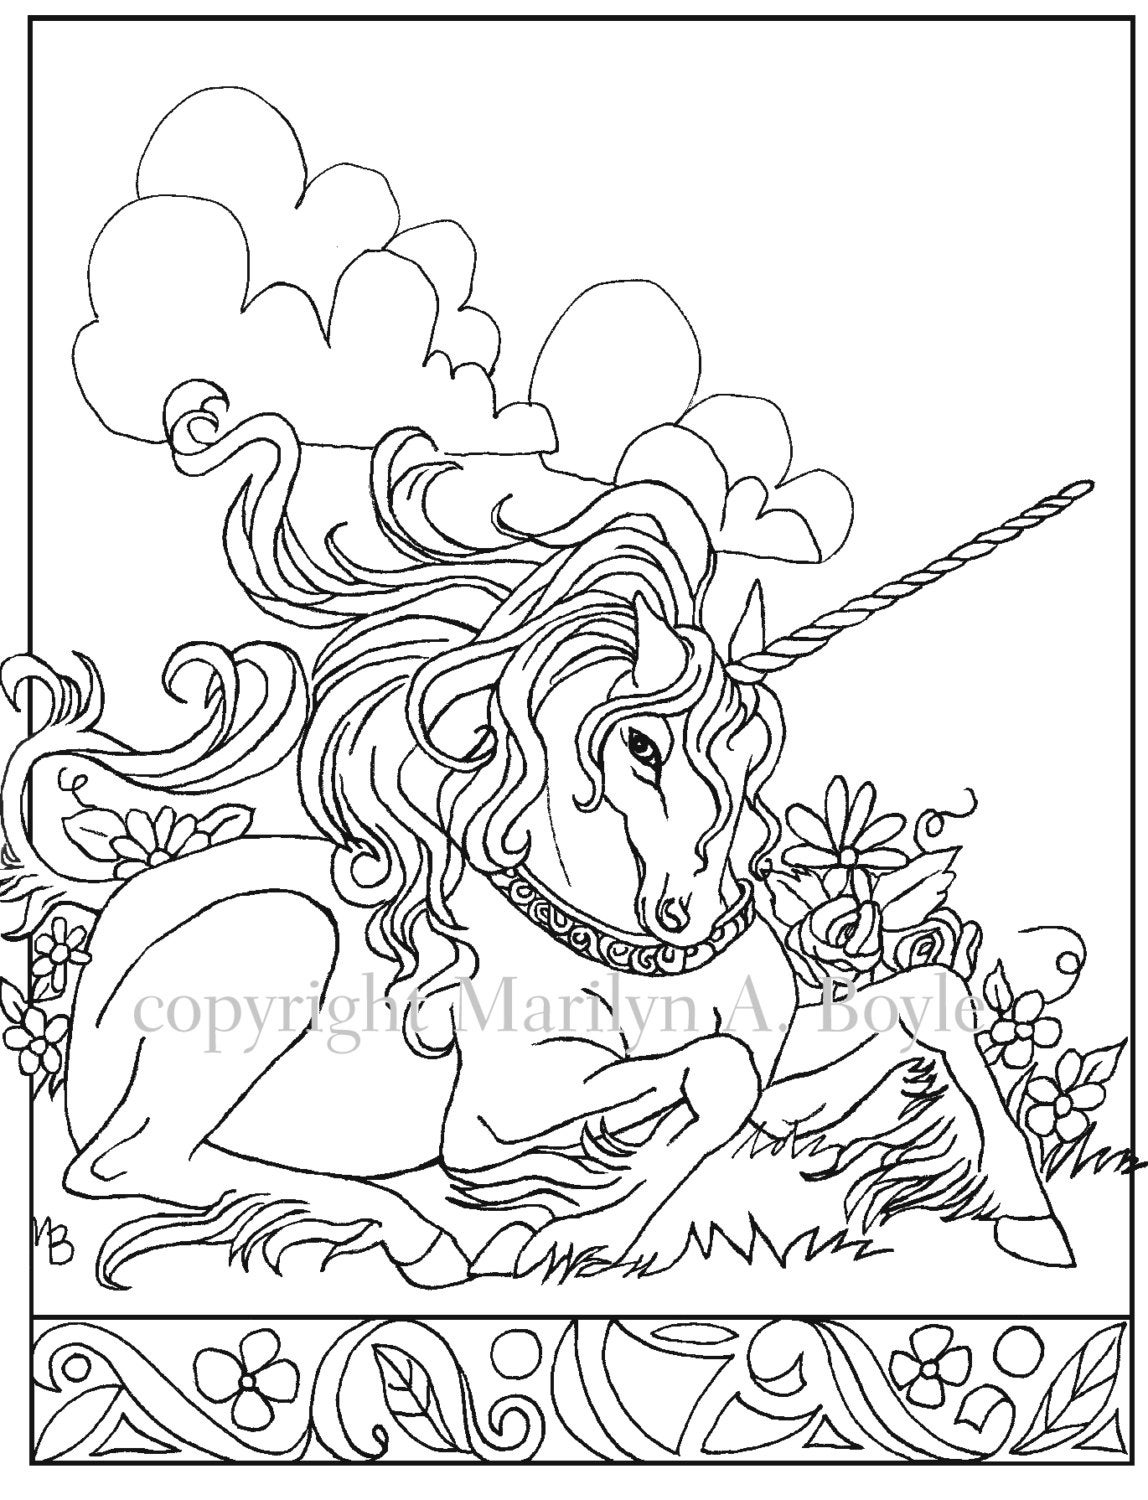 digitale download unicorn volwassen kleurplaten pagina